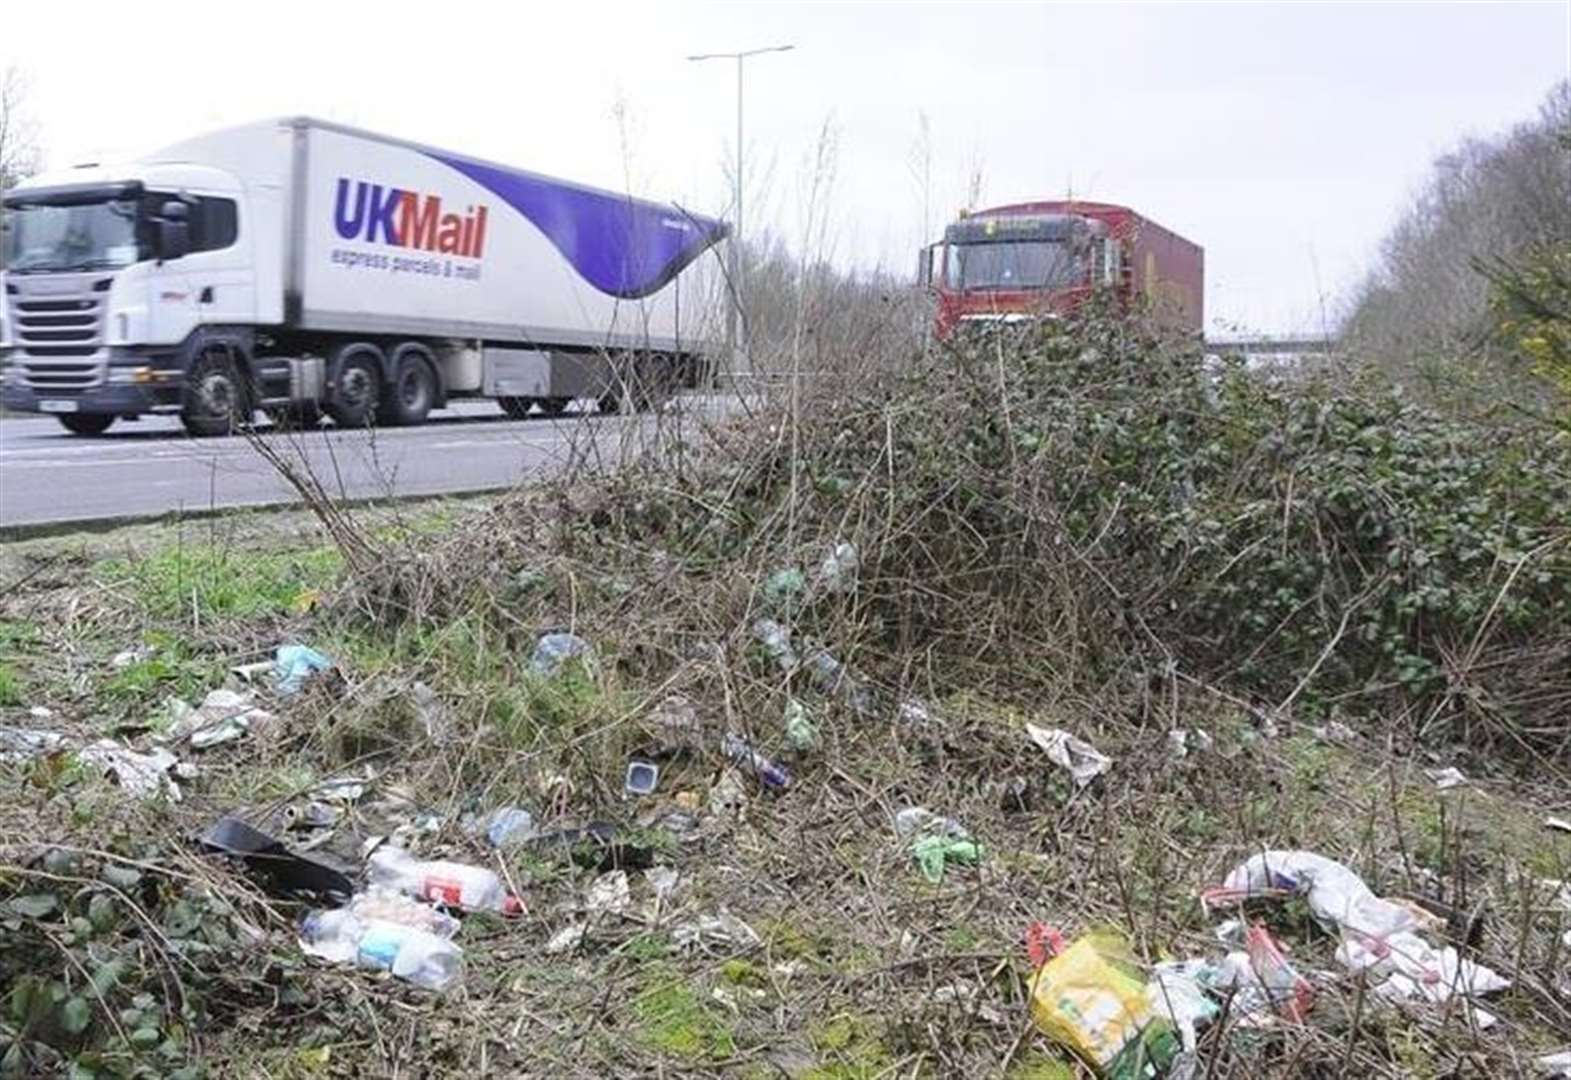 'Nonsensical' response to roadside litter idea